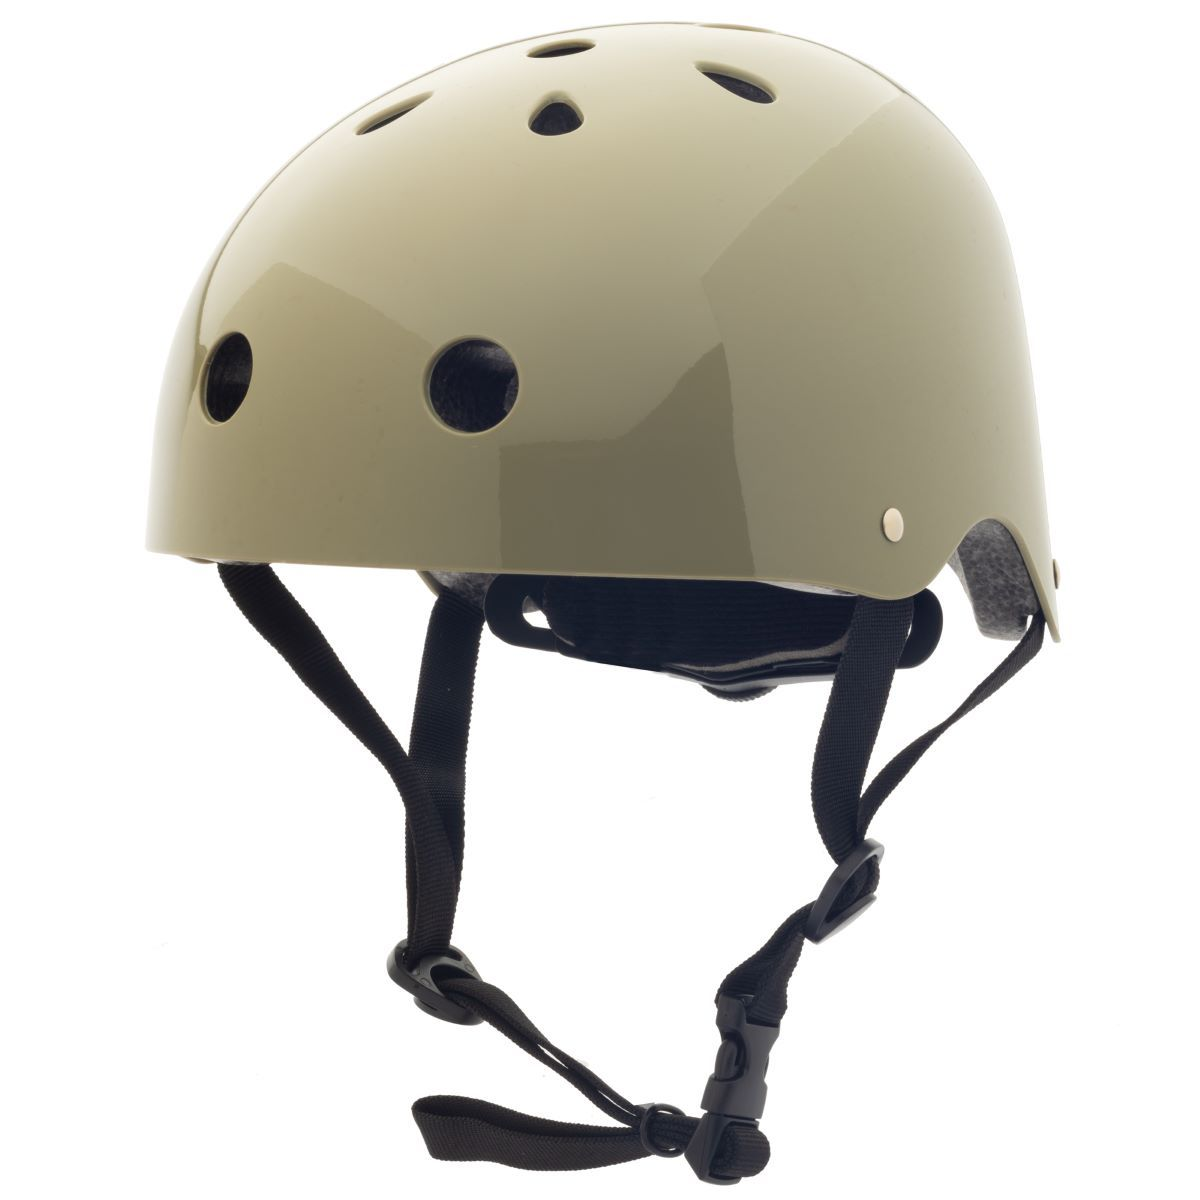 Trybike CoConuts Helmet in Green - Extra Small